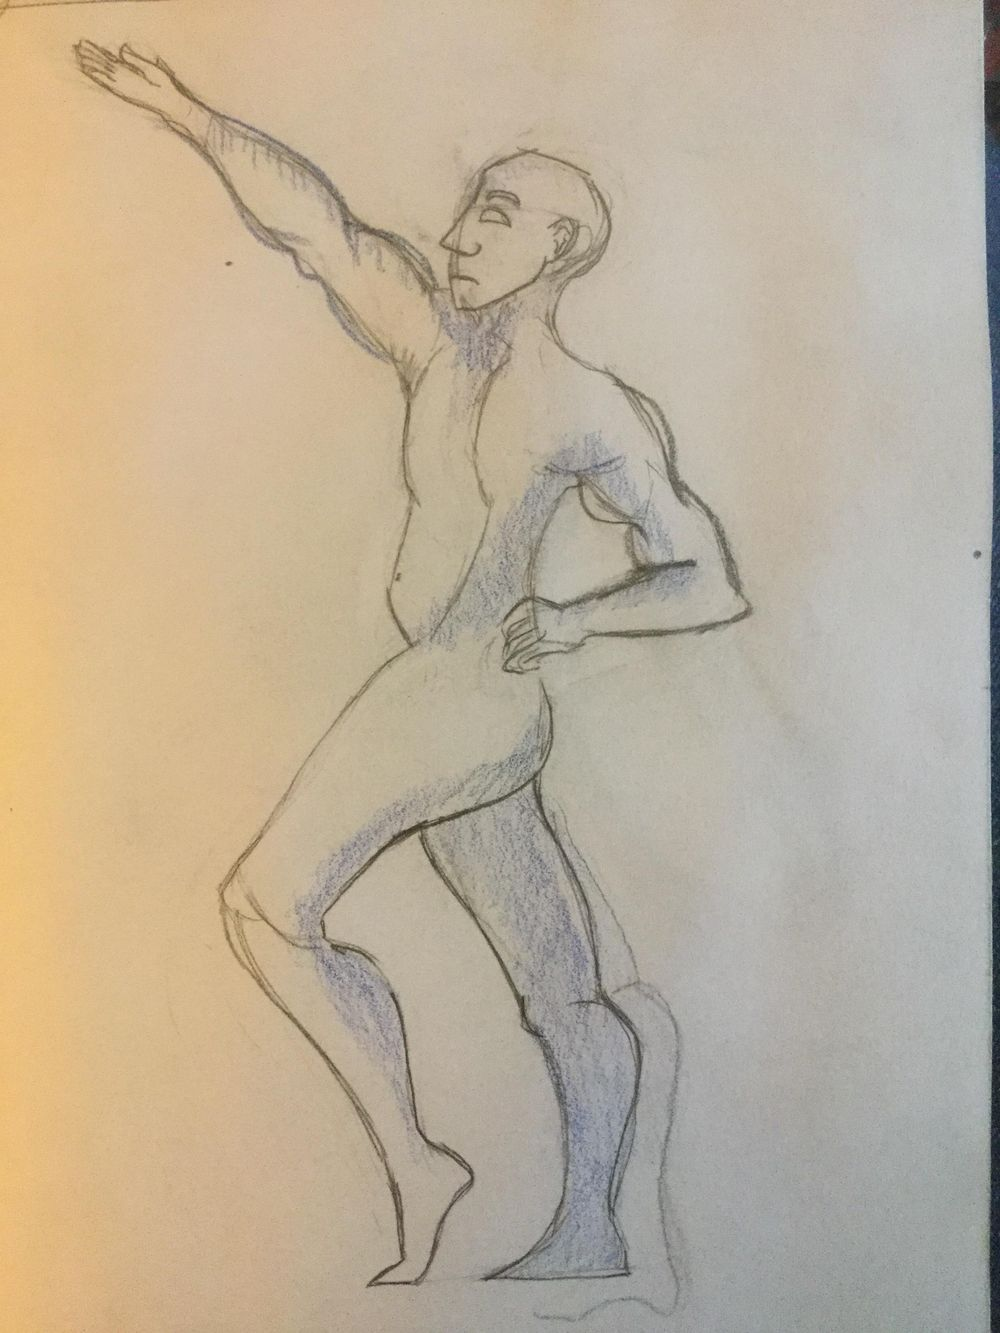 First time drawing a figure - image 1 - student project